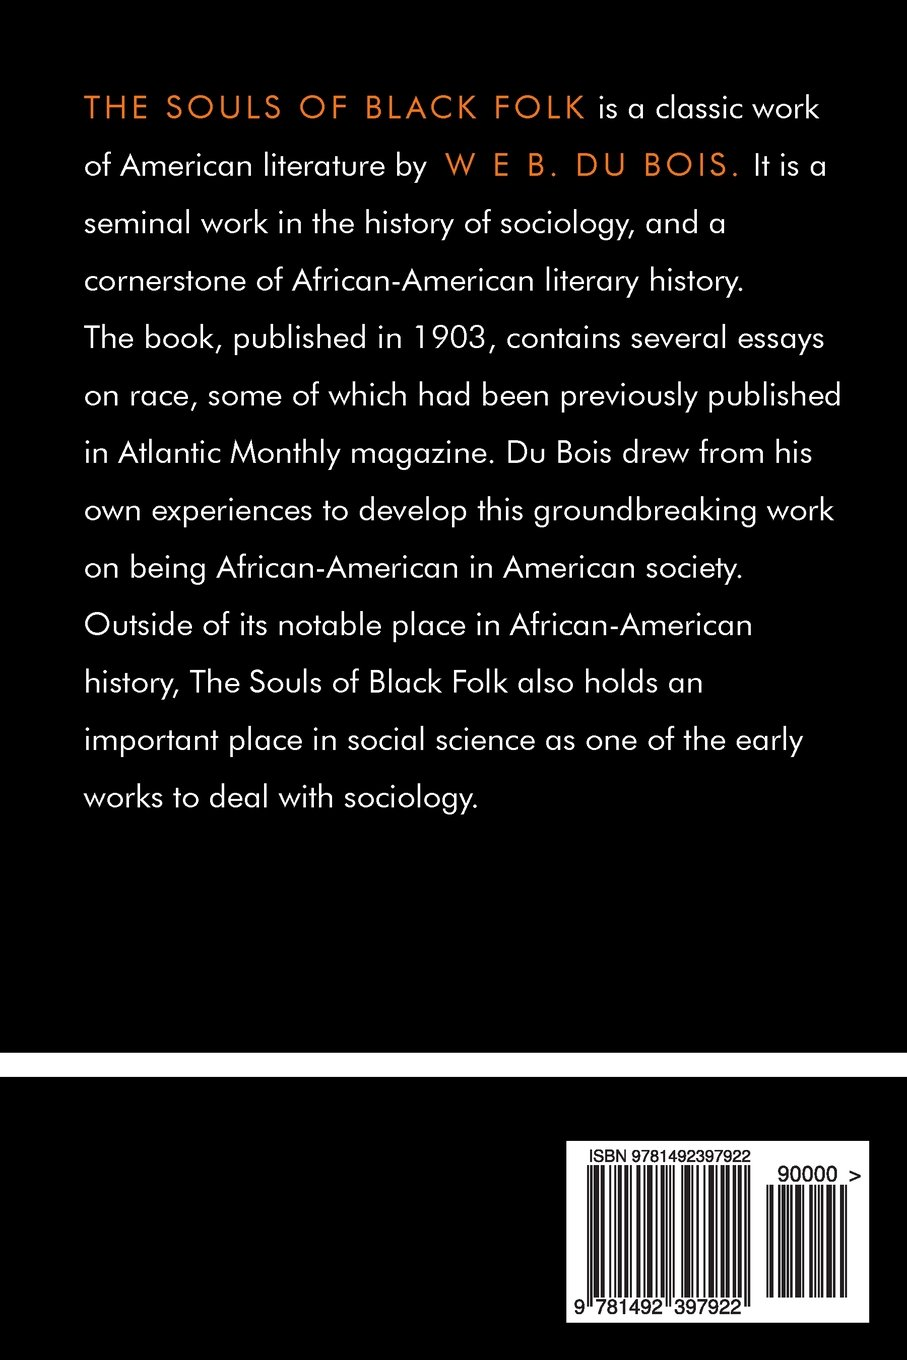 com the souls of black folk w e b du com the souls of black folk 9781492397922 w e b du bois books